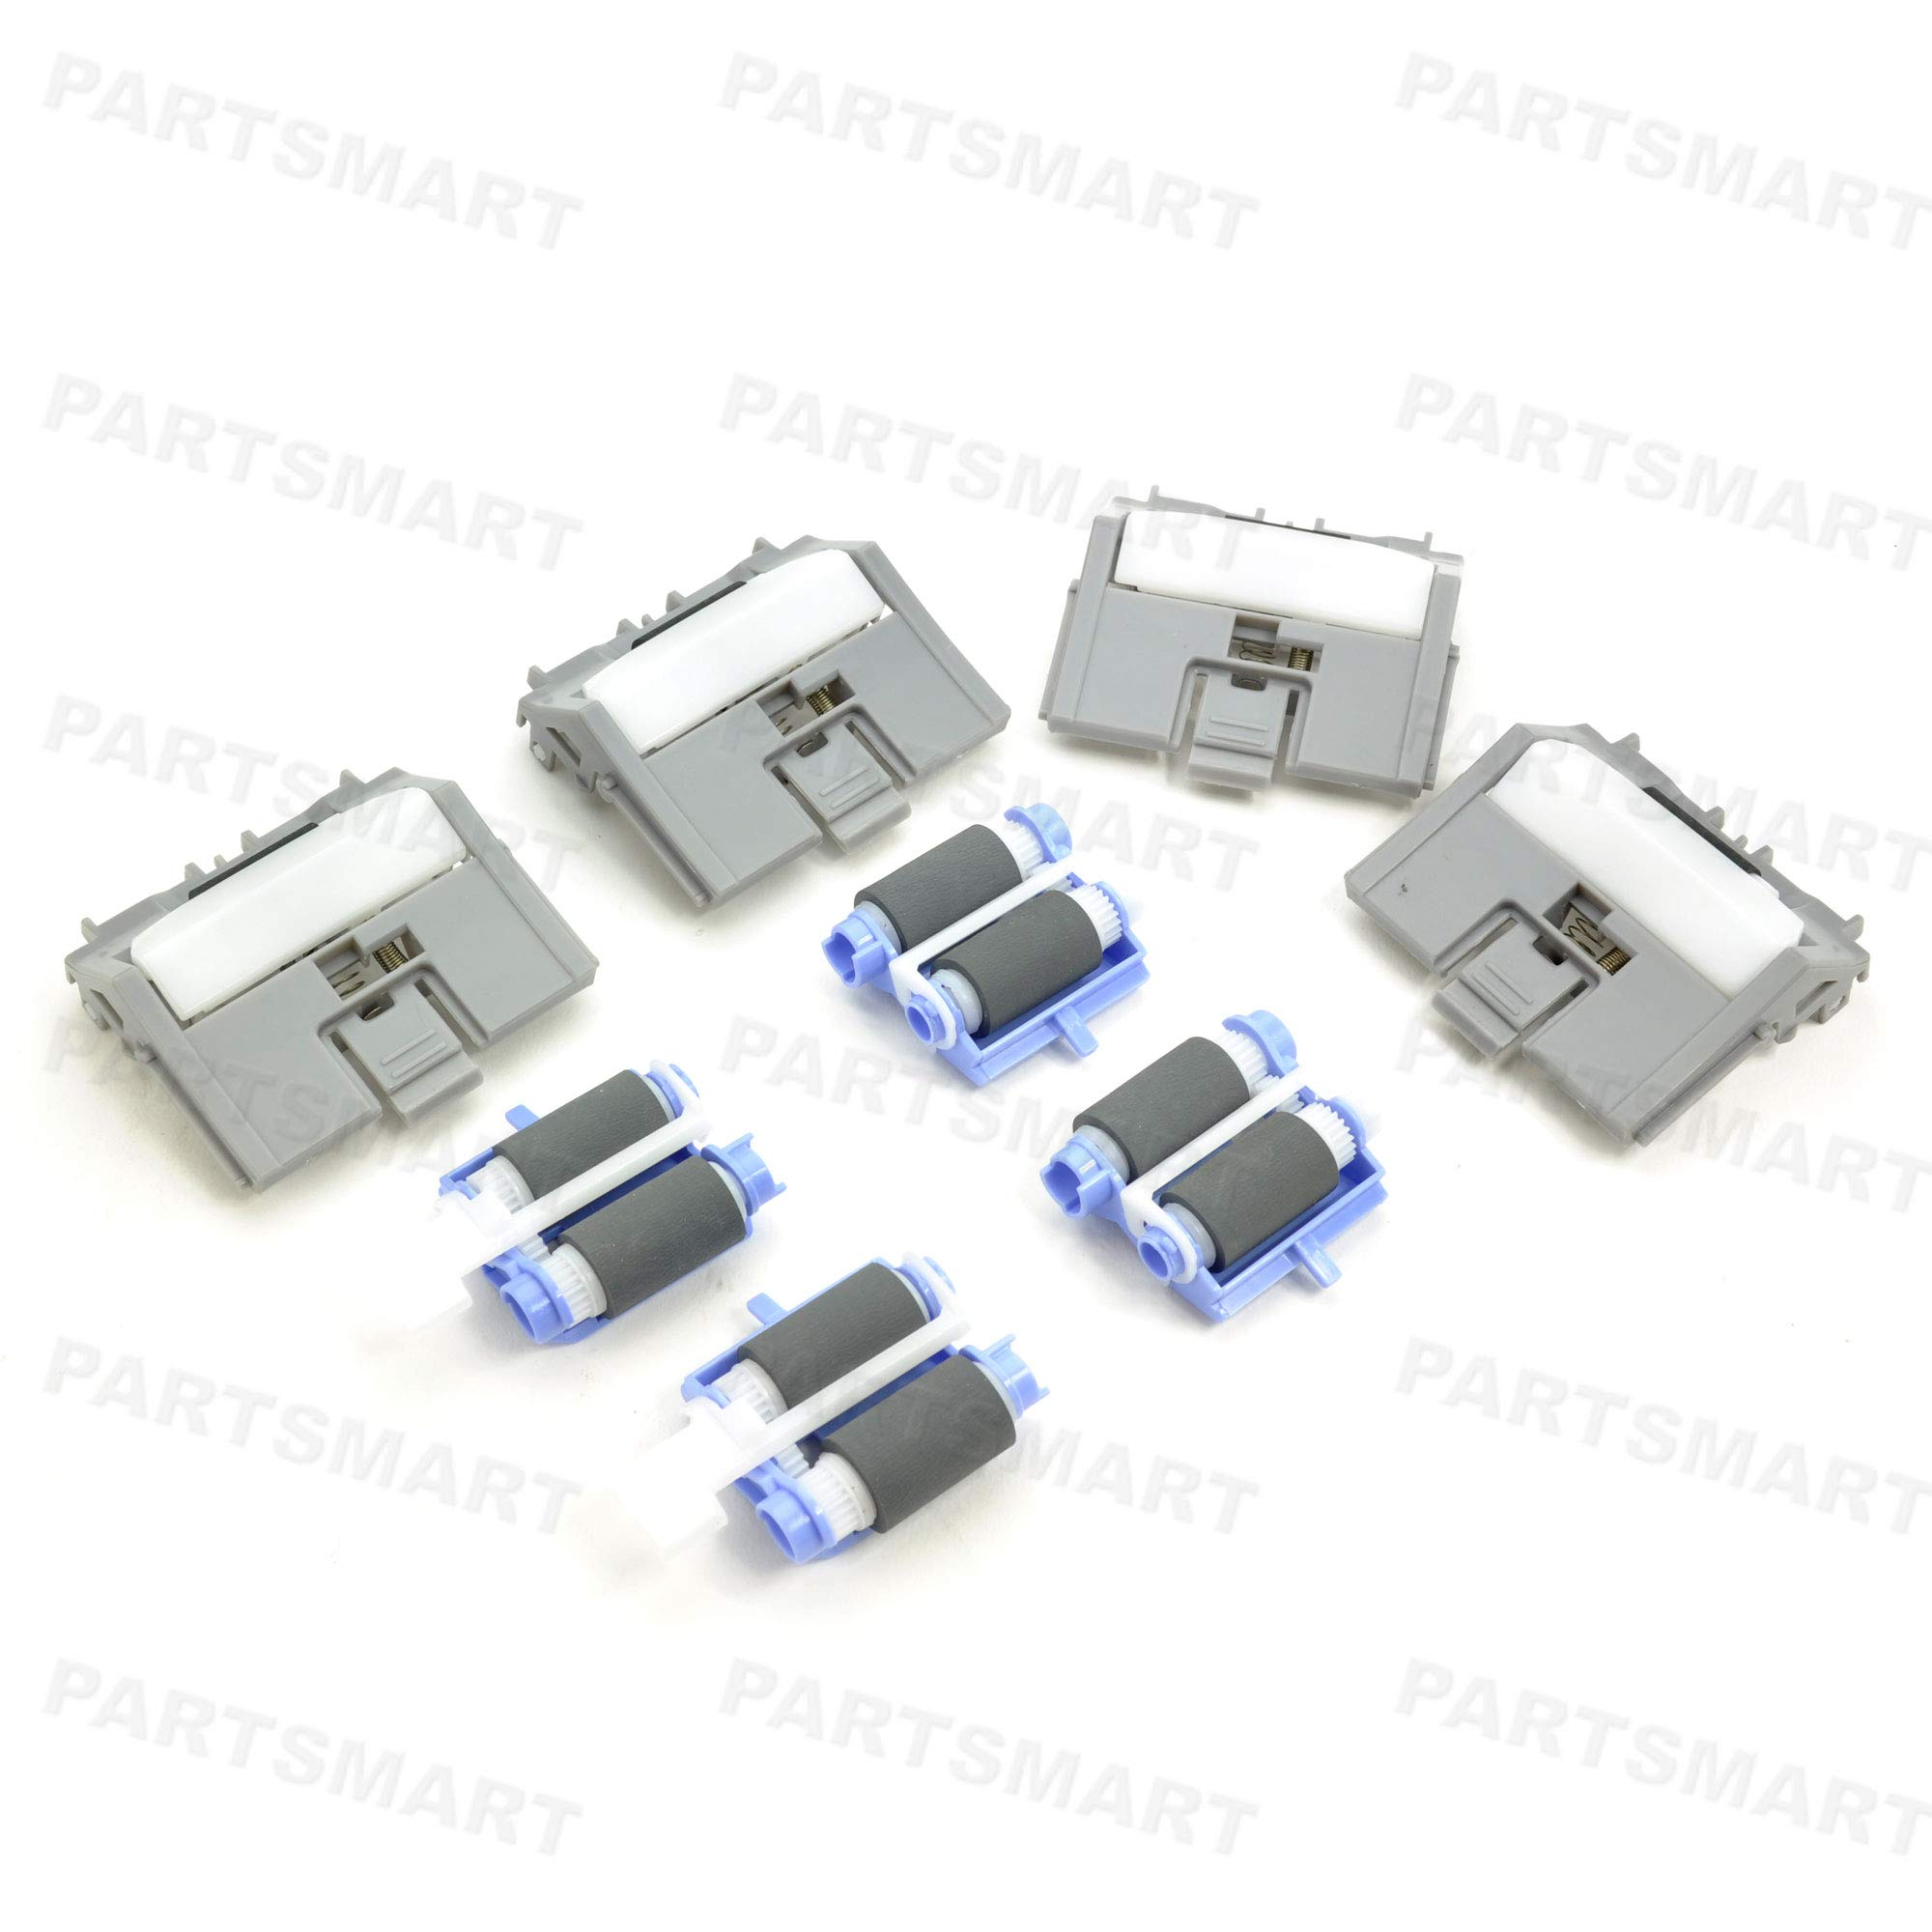 Partsmart Compatible F2A68-67913 Roller Kit, Tray 2-5, Opt Tray for HP Laserjet Enterprise M506, M527 MFP, Laserjet Pro M402, M403, M426 MFP, M427 MFP, M501